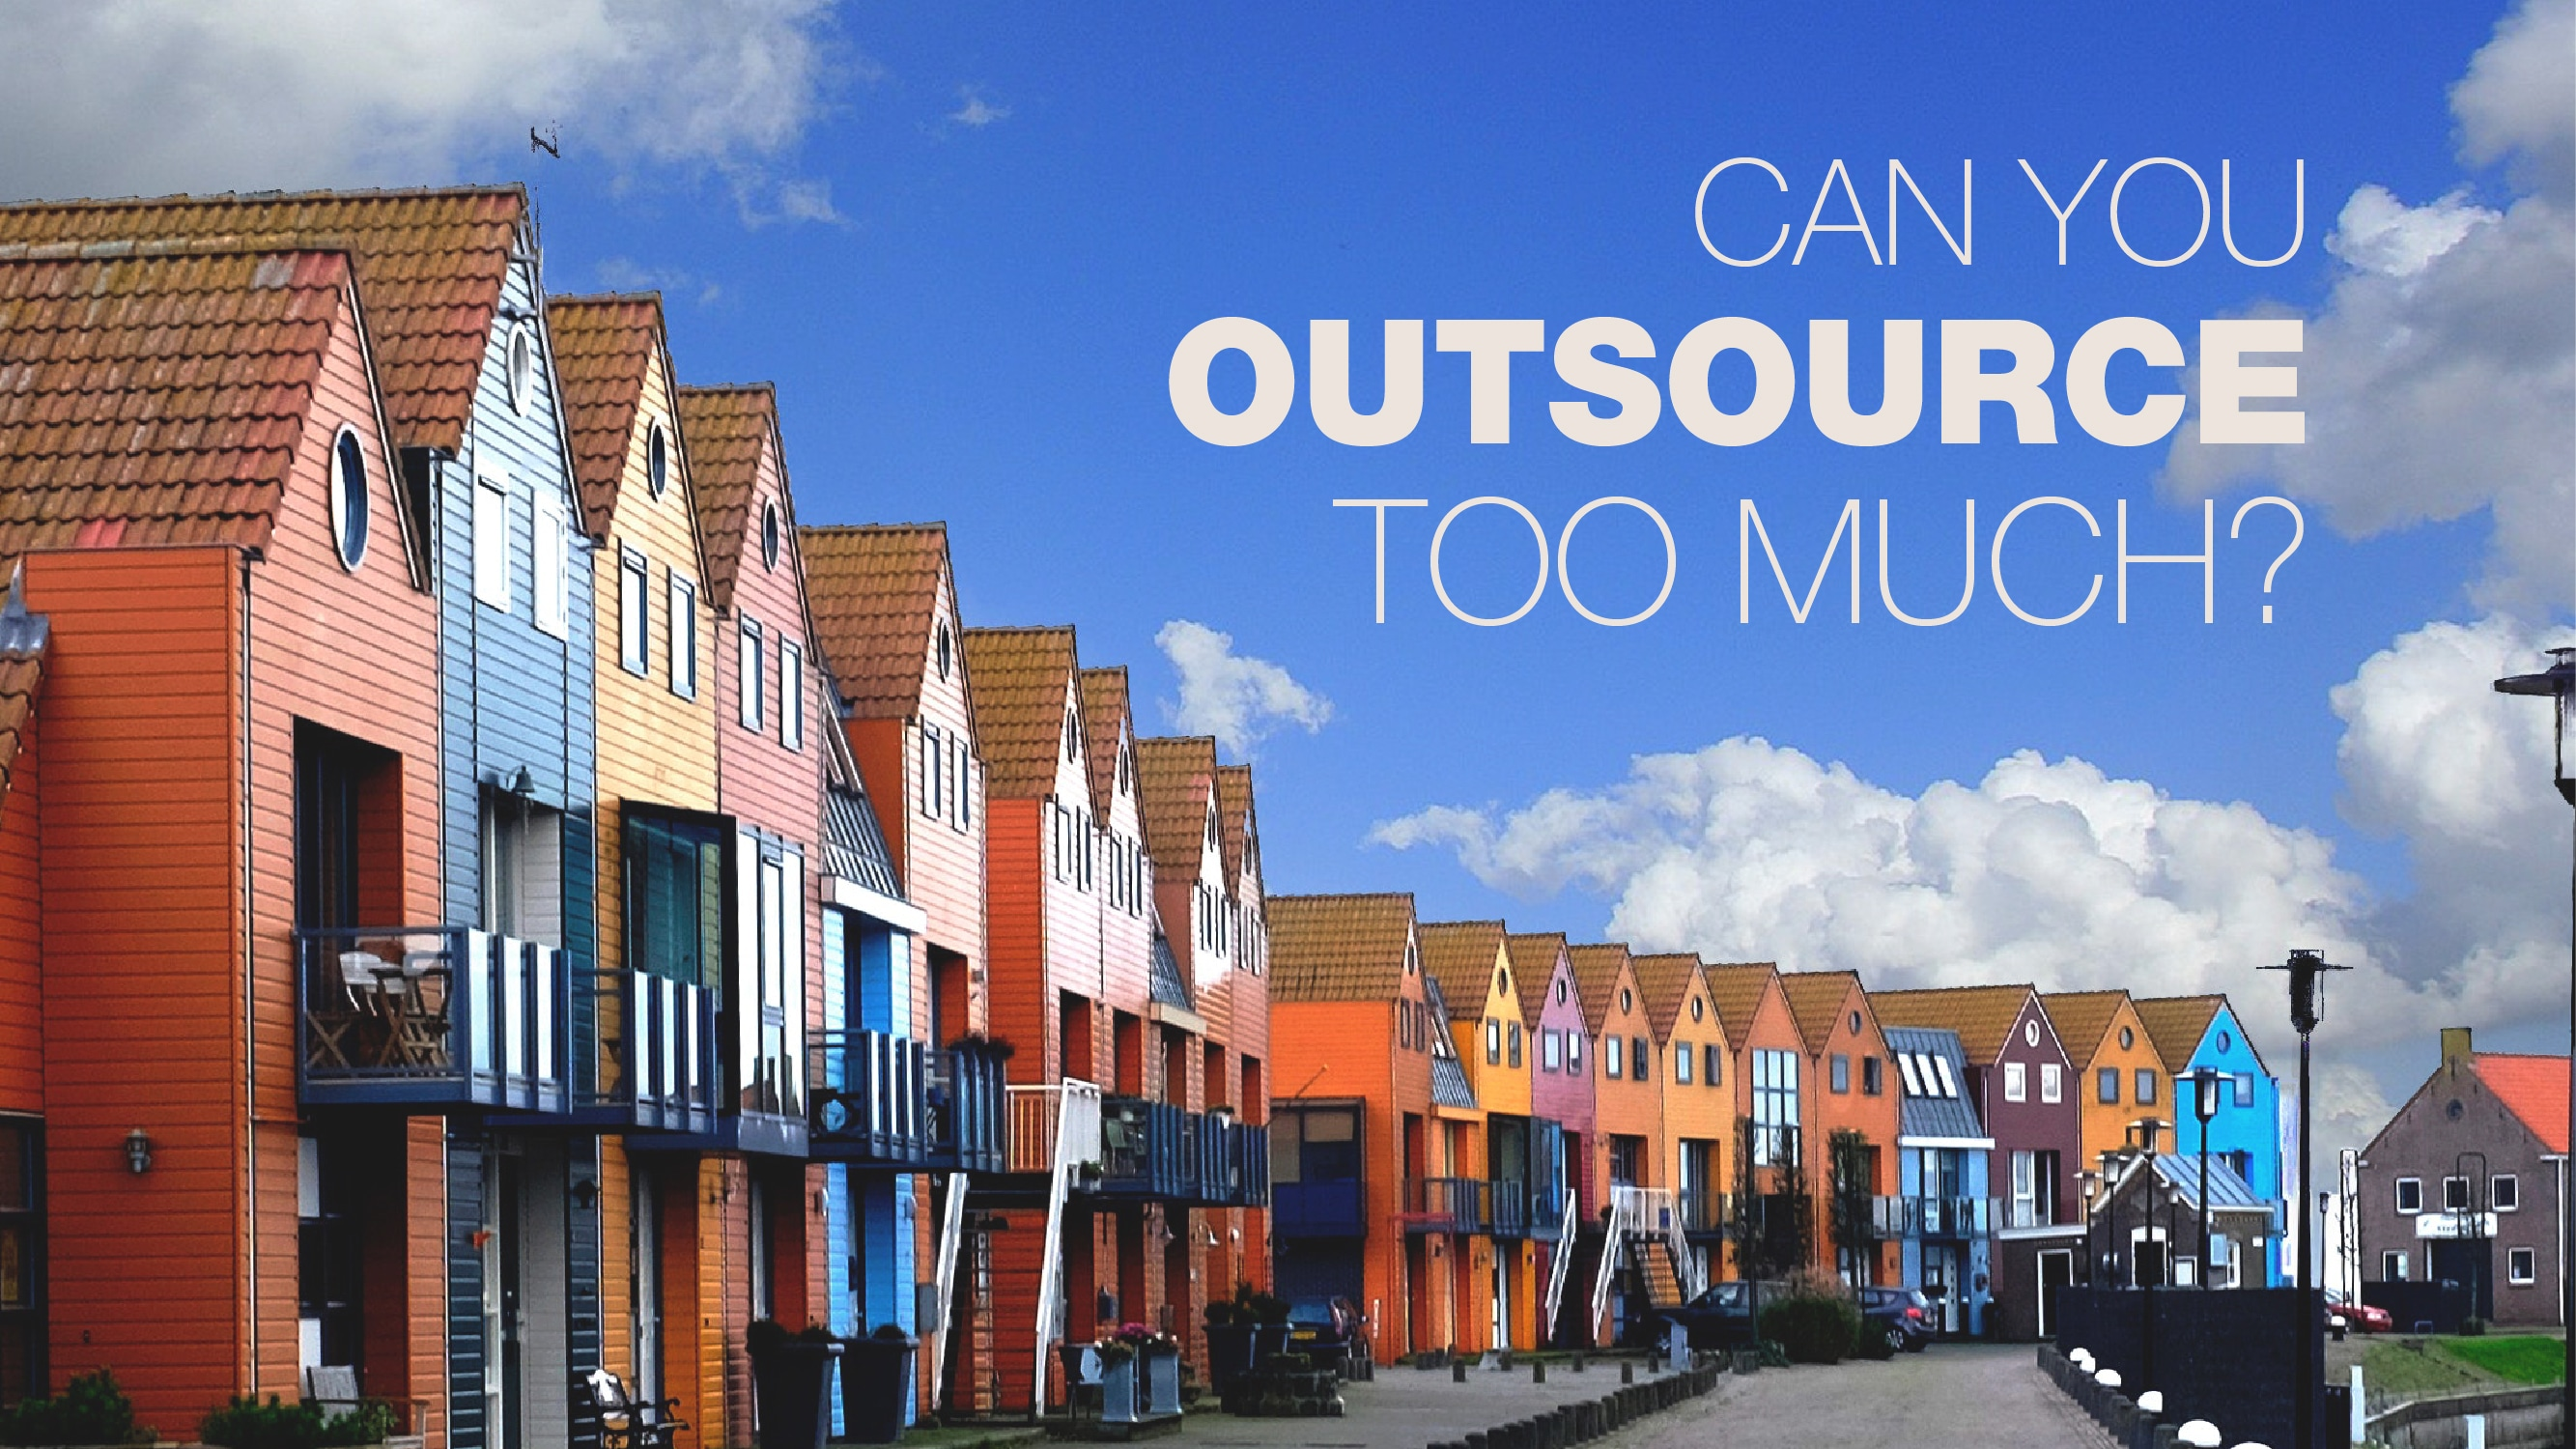 Can you outsource TOO MUCH?